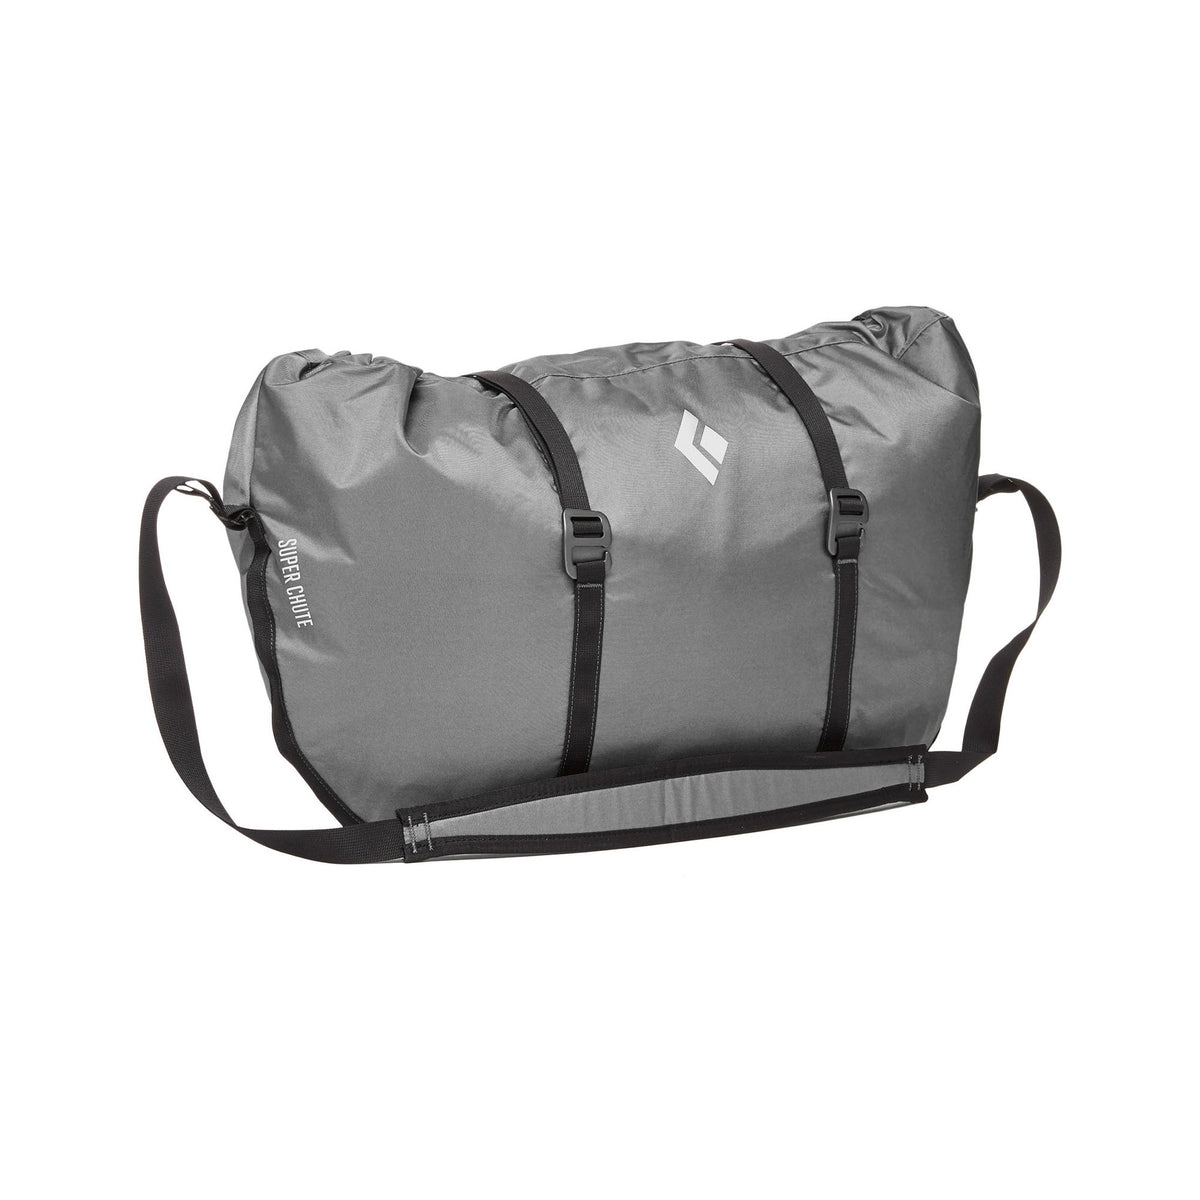 Black Diamond Super Chute climbing rope bag, shown closed in nickel colour